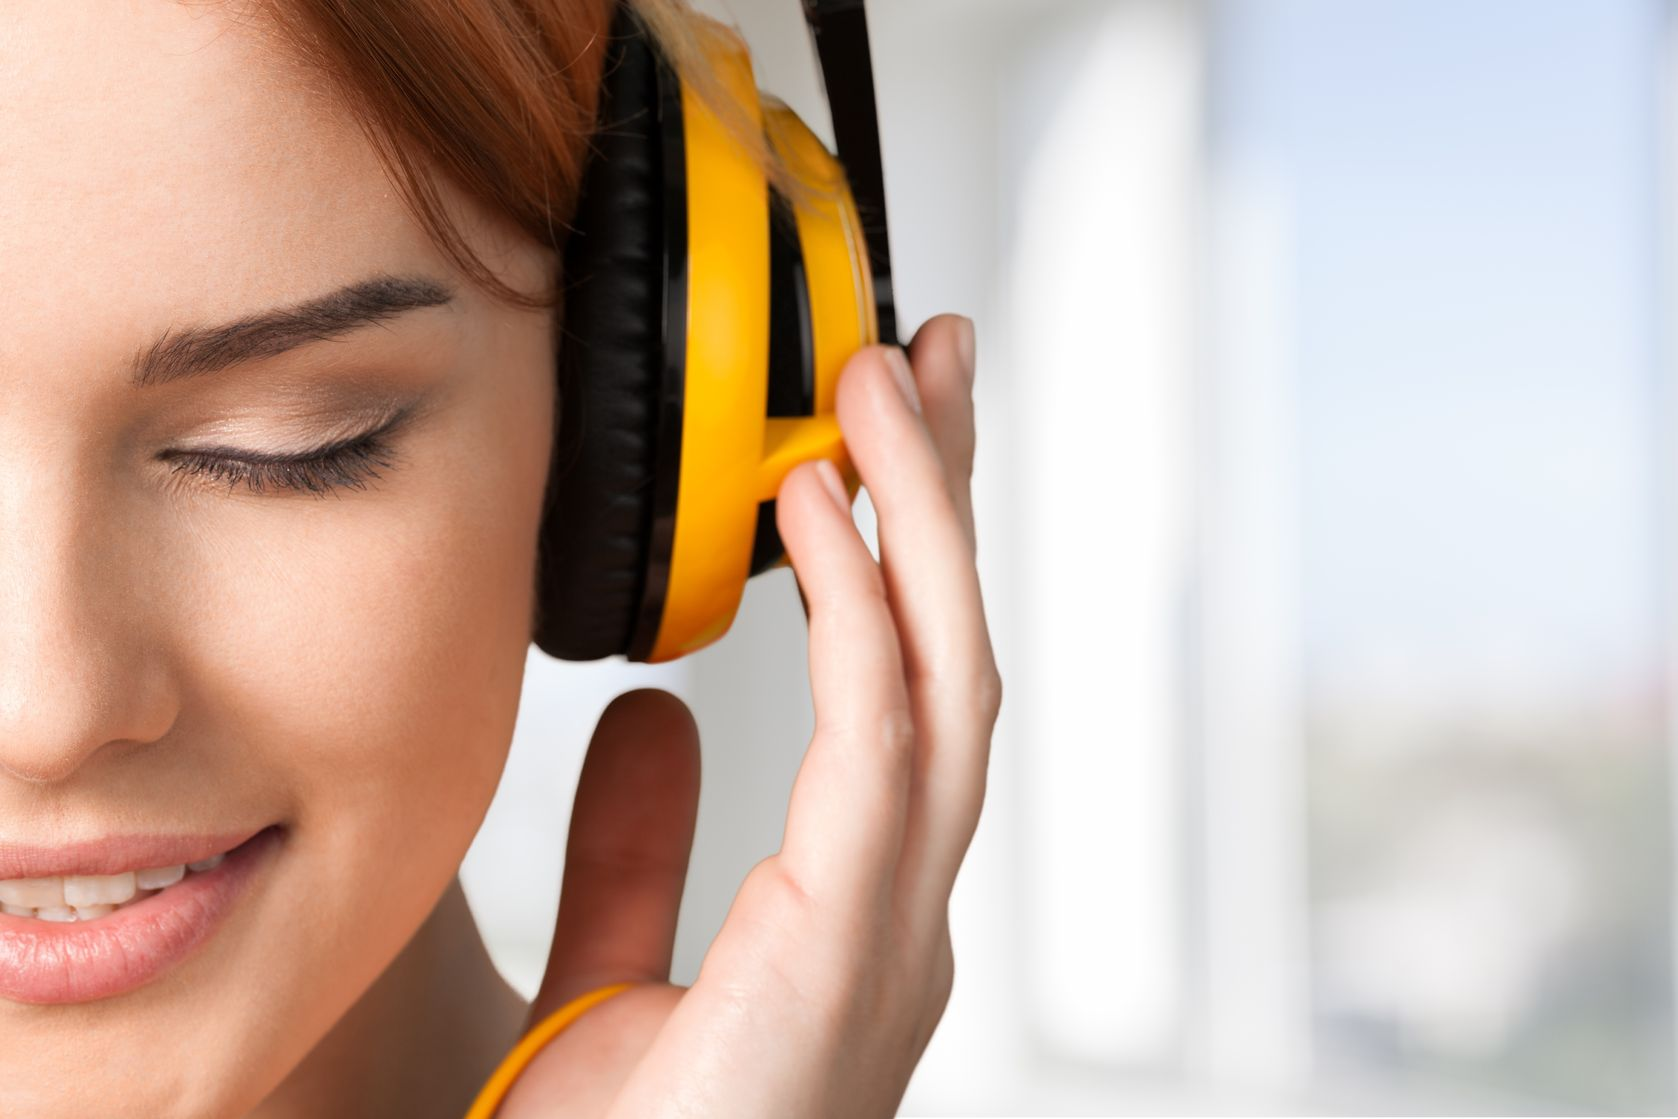 Listening to Music Improves Your Appearance (there's scientific proof!)